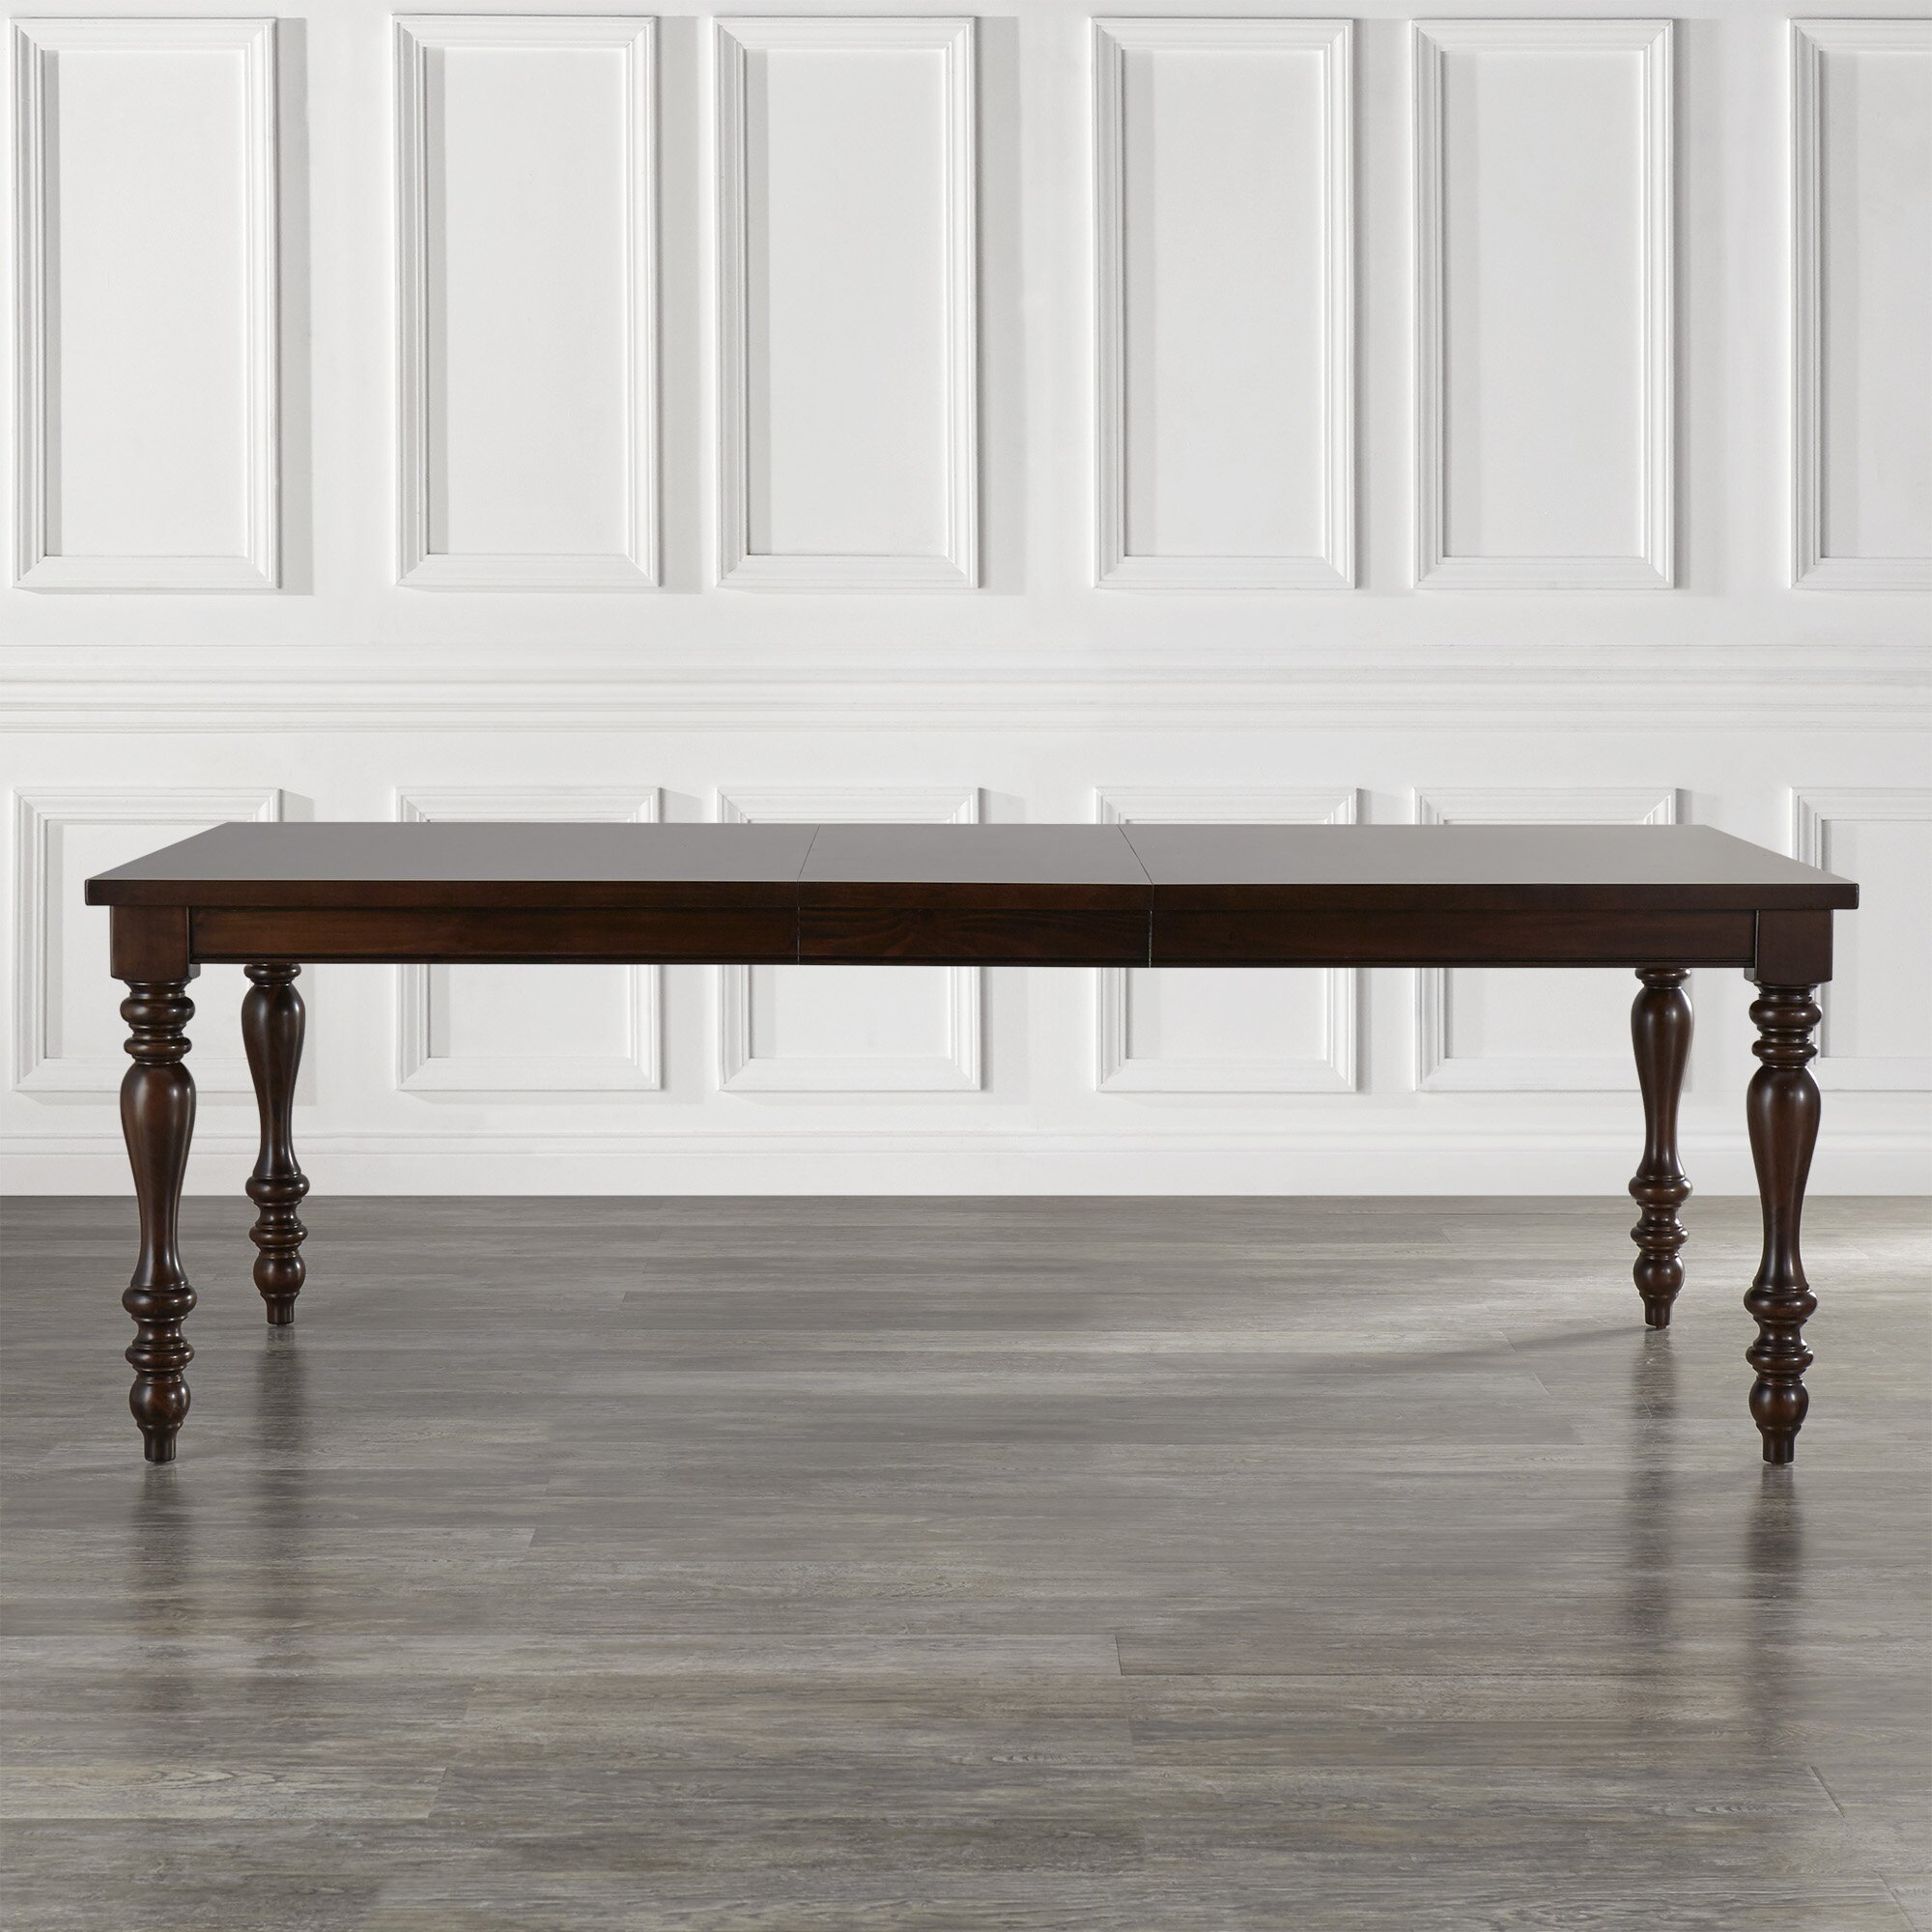 Darby Home Co Hilliard Extendable Dining Table amp Reviews  : Darby Home Co25C225AE Hilliard Extendable Dining Table from www.wayfair.com size 2000 x 2000 jpeg 550kB